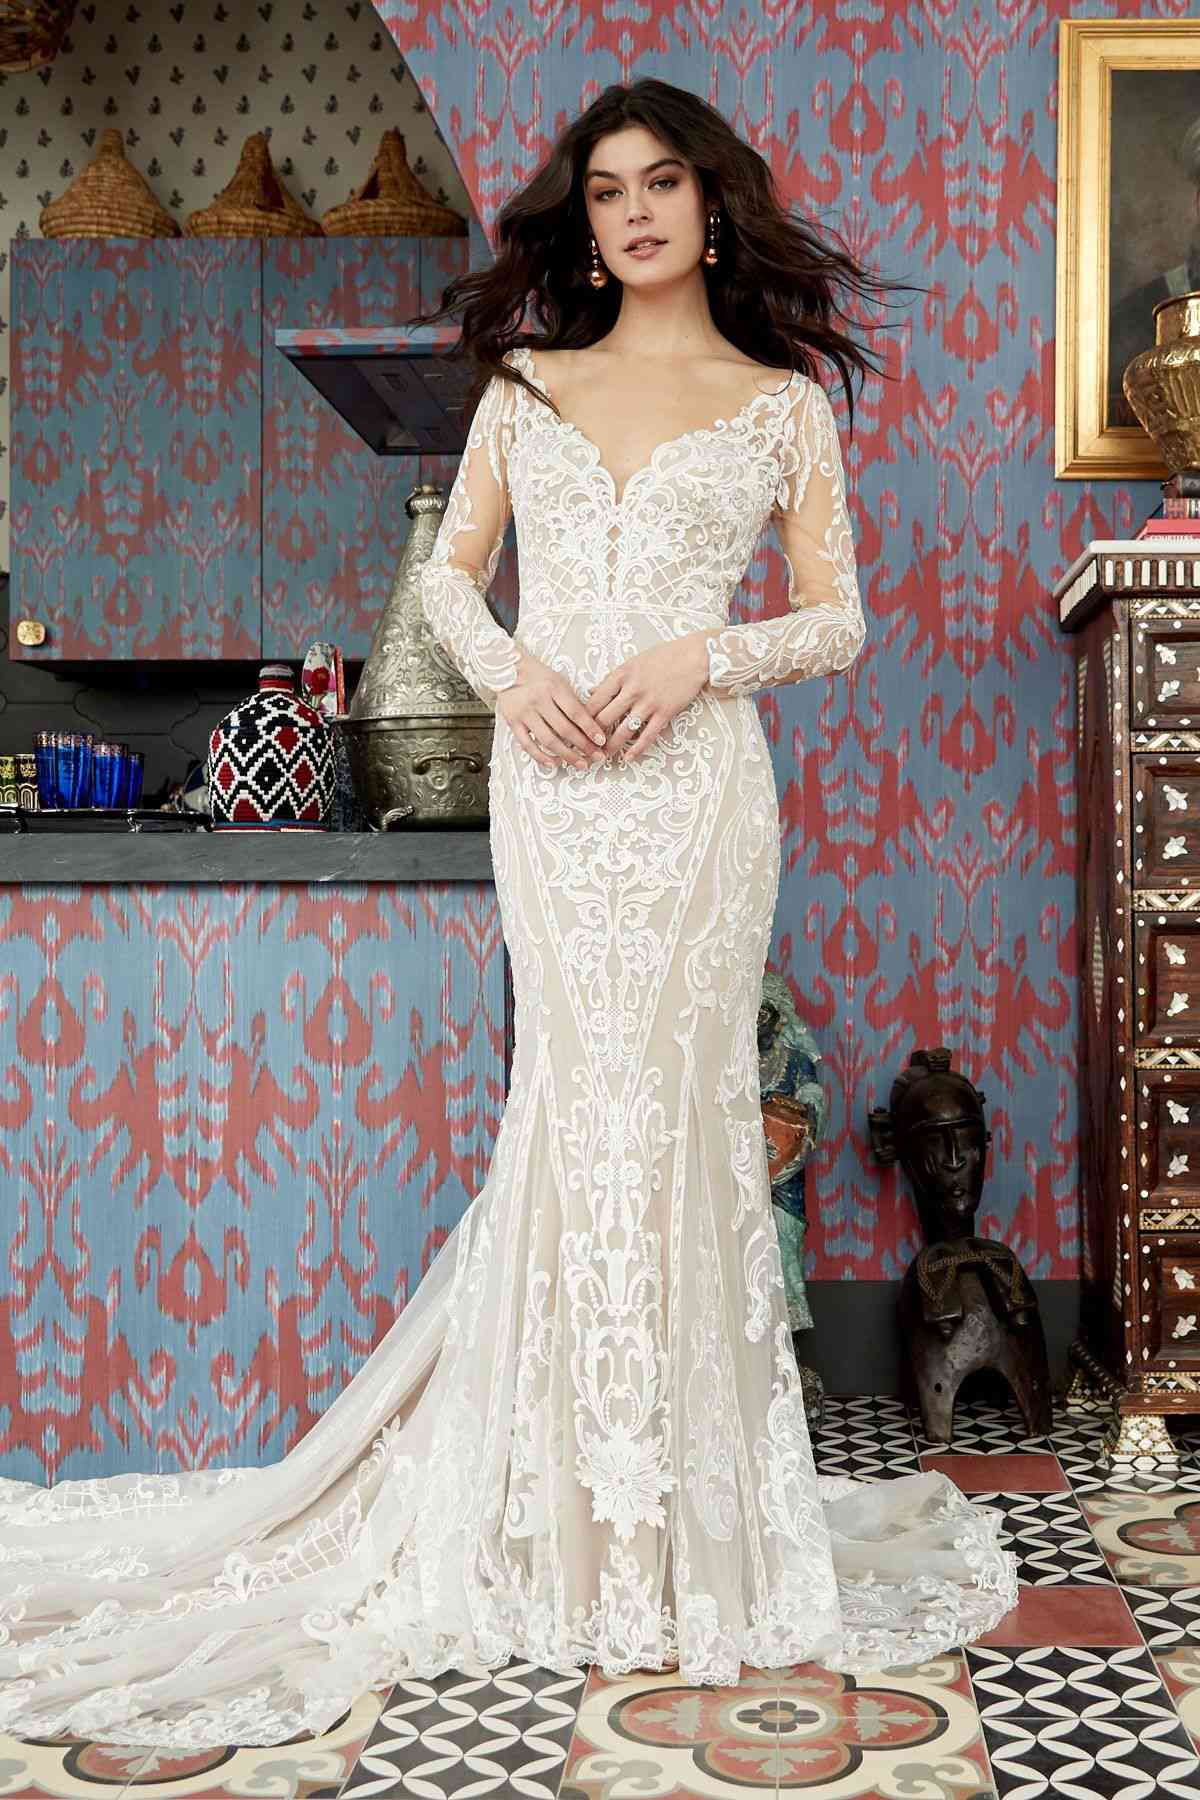 Model in long-sleeve lace fit and flare gown